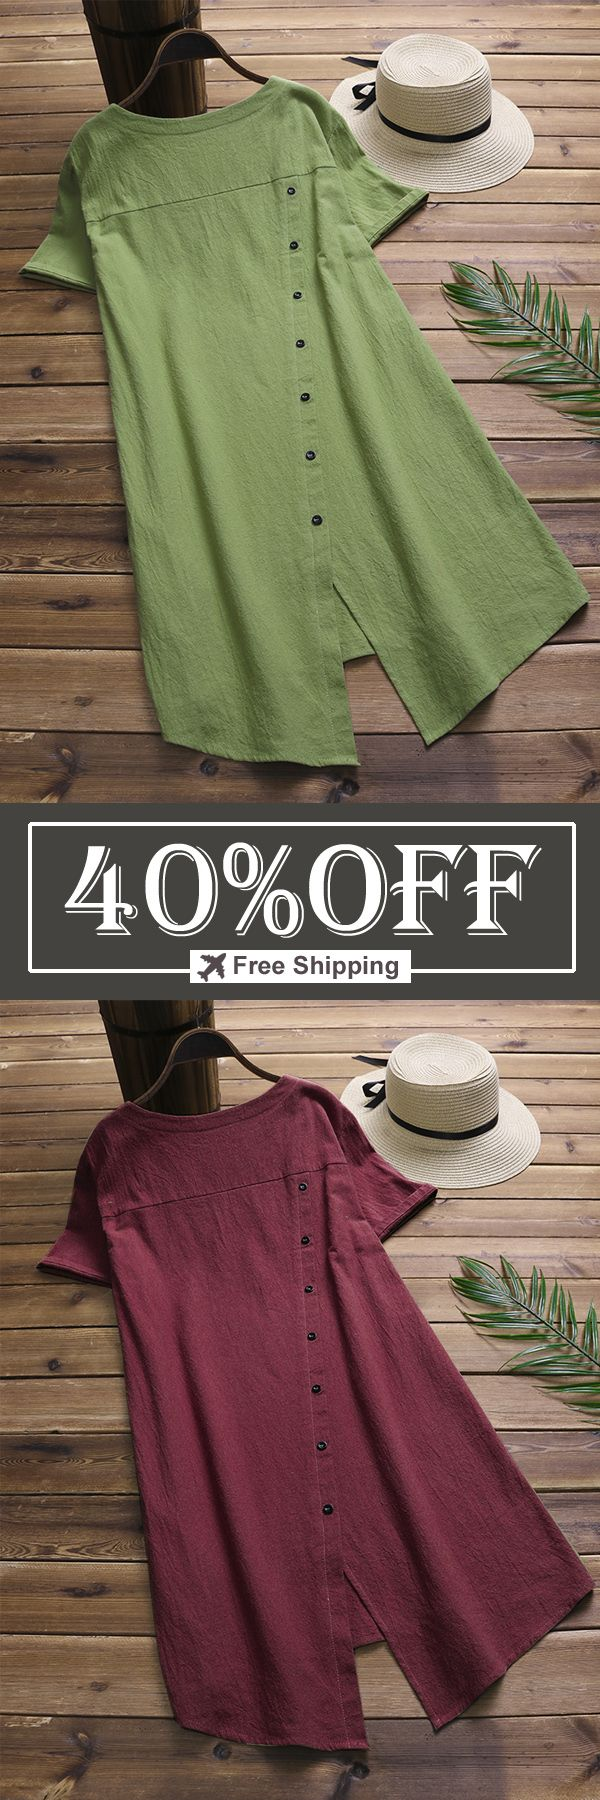 a5c1f5246125a8 40%OFF Free shipping. Shop in banggood.com now! Kurtis